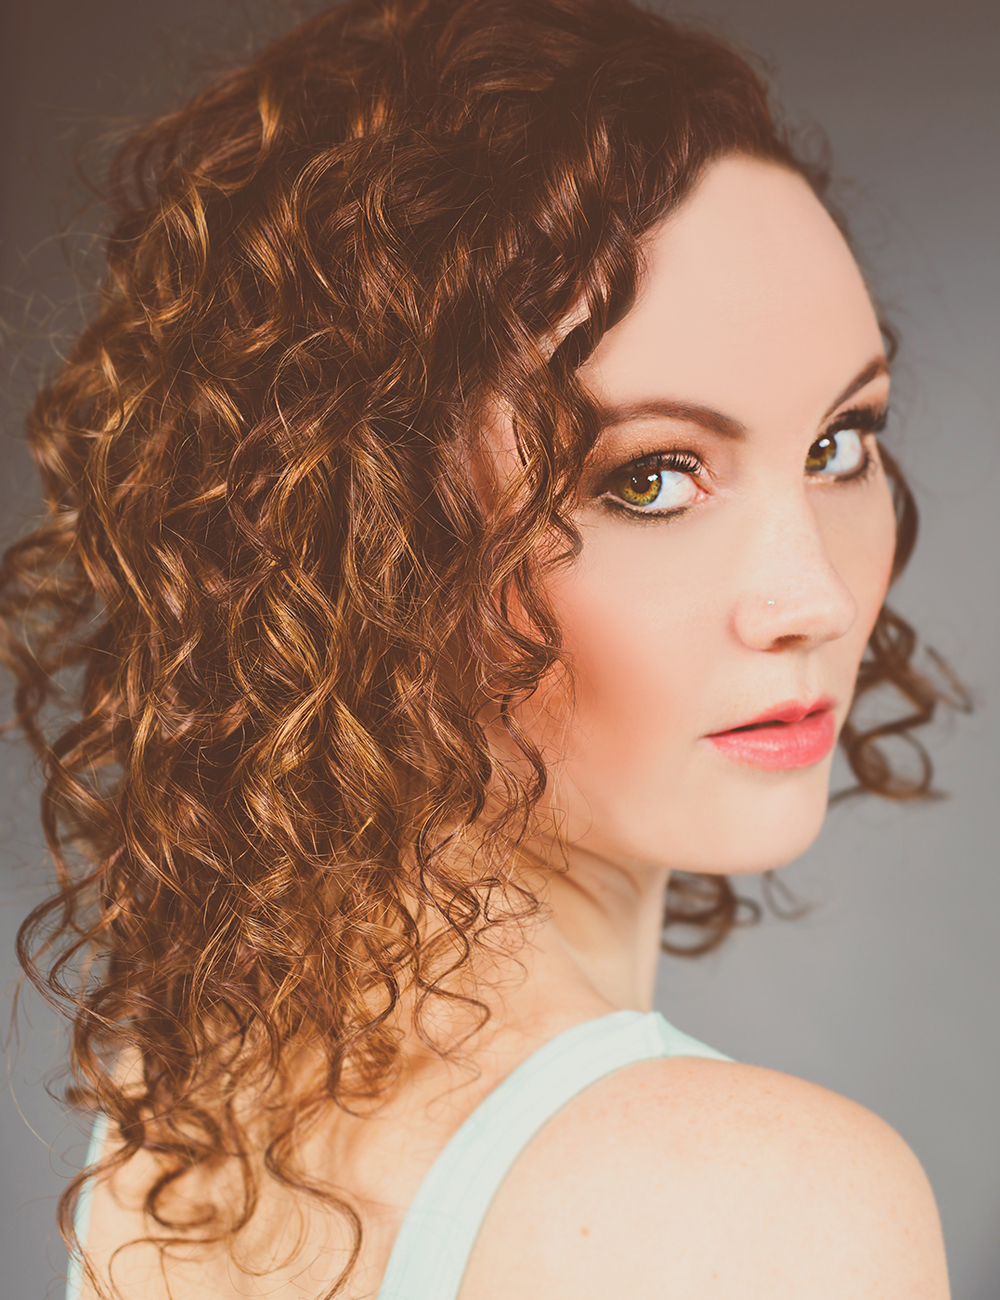 poppy hair salon, vancouver bc, spring photo shoot, jennifer picard photography